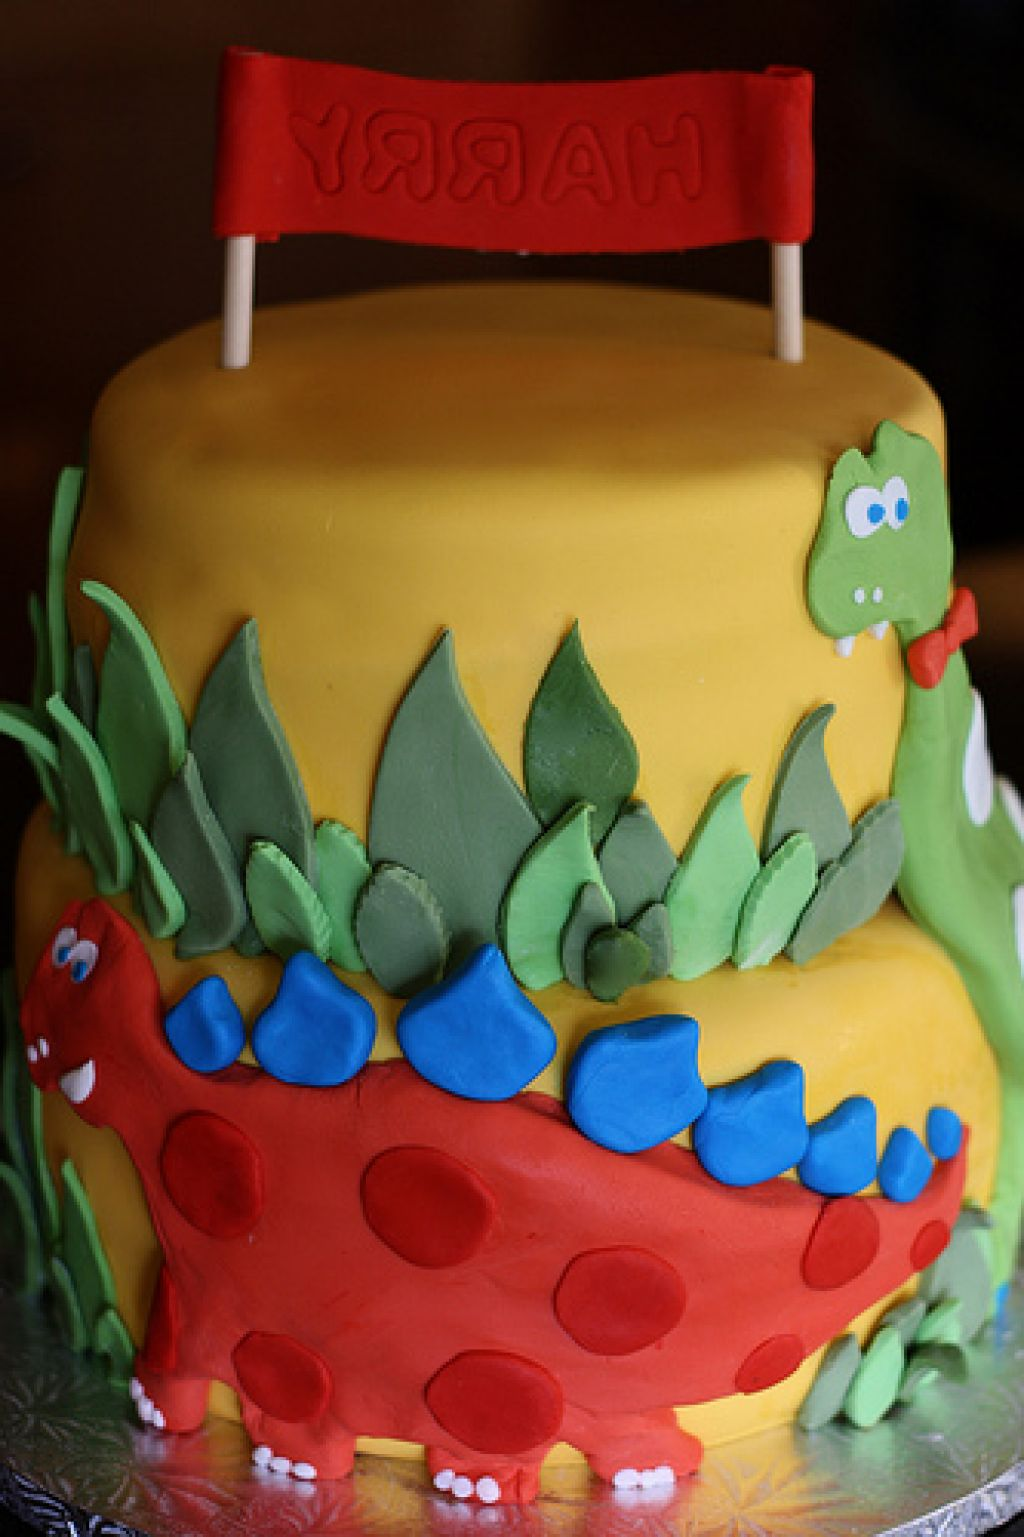 Pleasing Dinosaur Birthday Cake For 3 Year Old The Cake Boutique Funny Birthday Cards Online Sheoxdamsfinfo